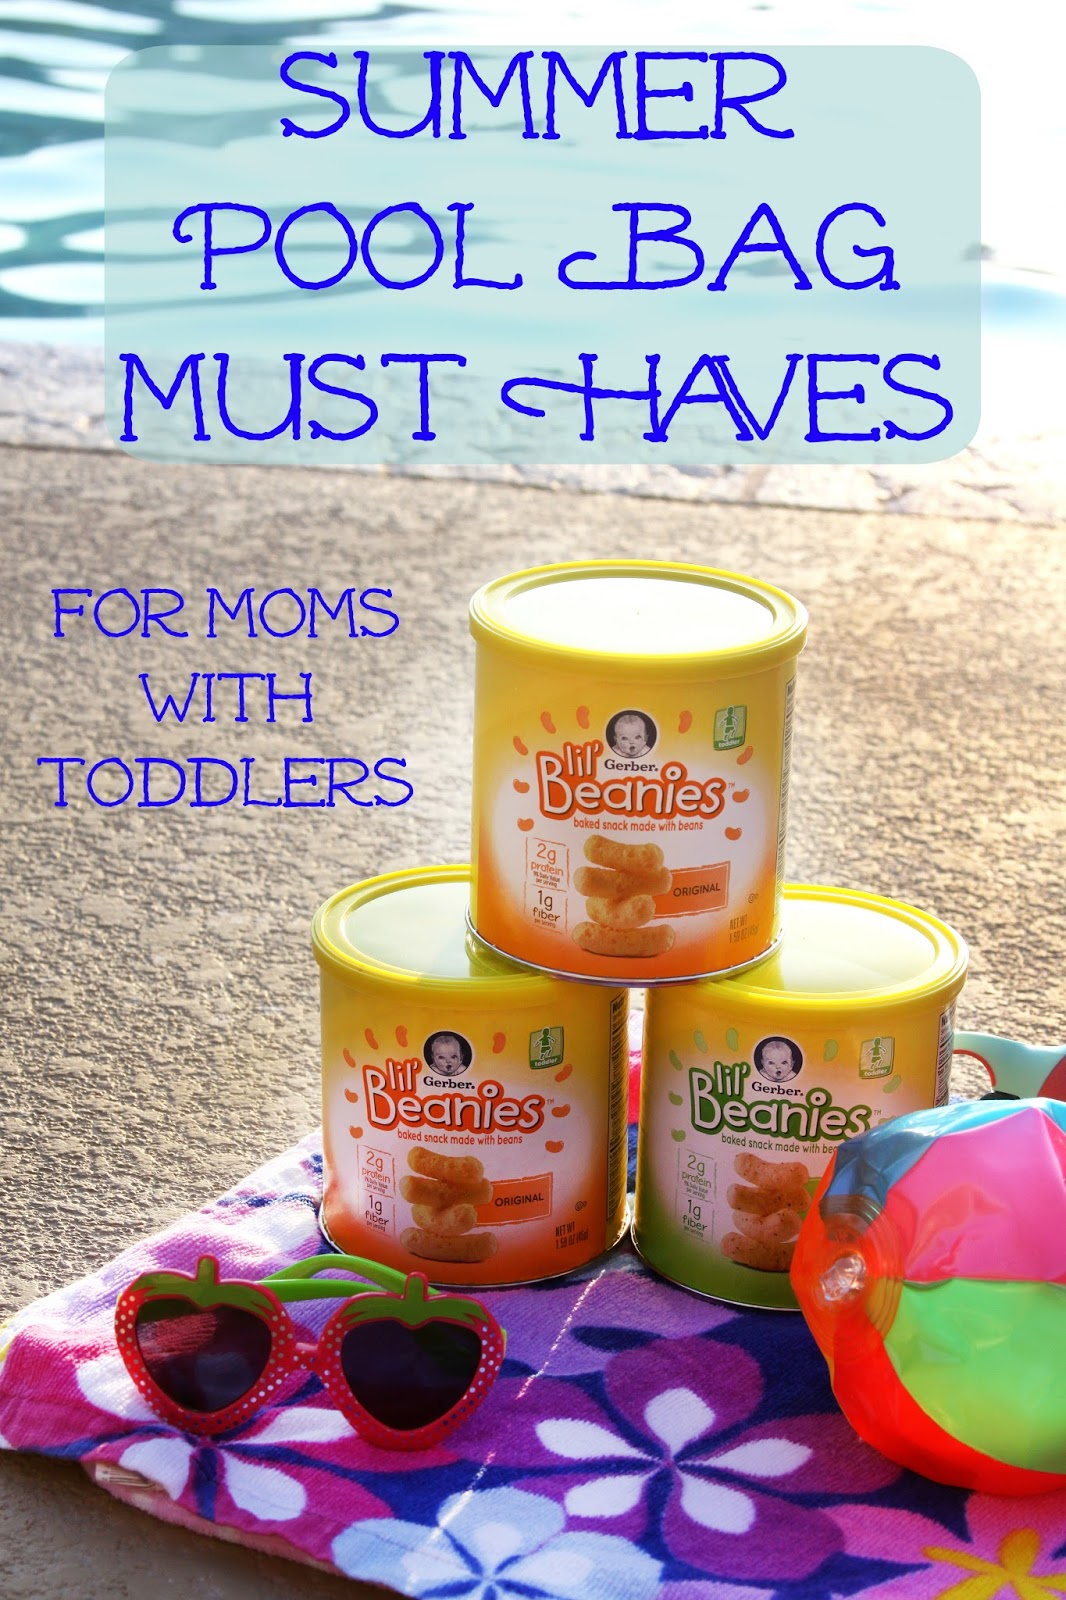 Summer Must Haves: For The Love Of Food: Summer Pool Bag Must Haves For Moms